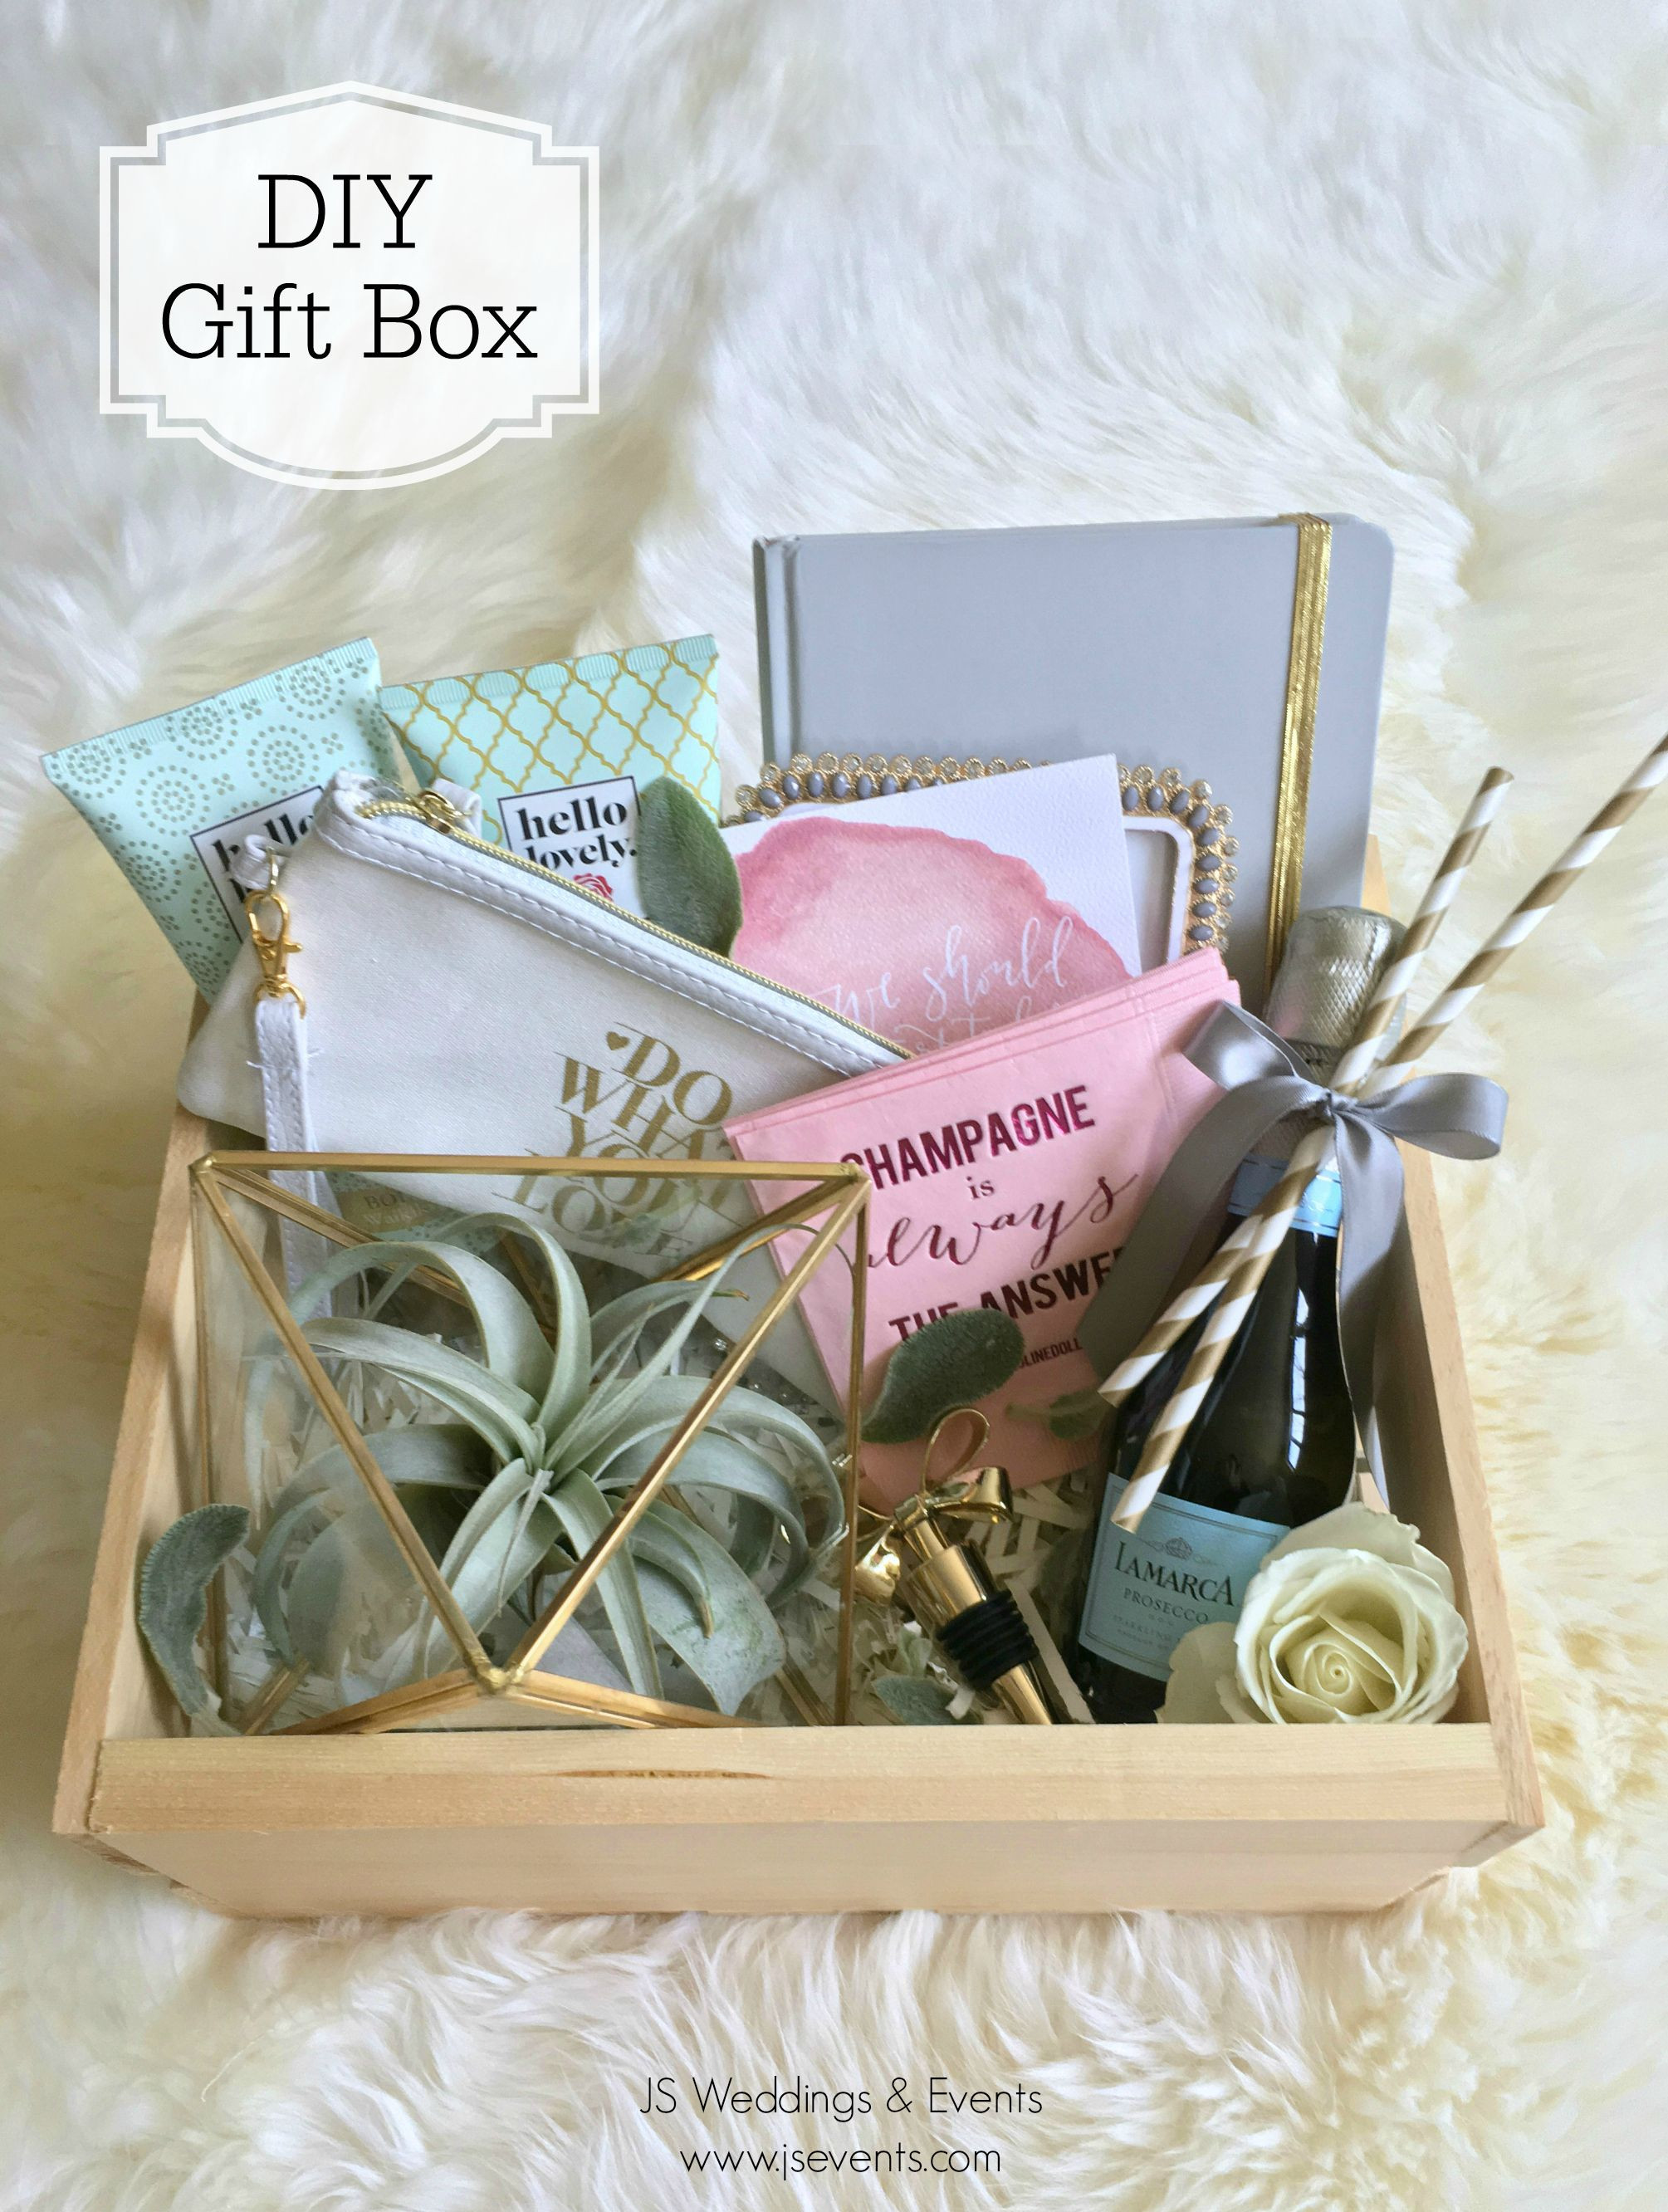 Best ideas about Wedding Gift Boxes Ideas . Save or Pin DIY Gift Box j u b i l e e  Now.